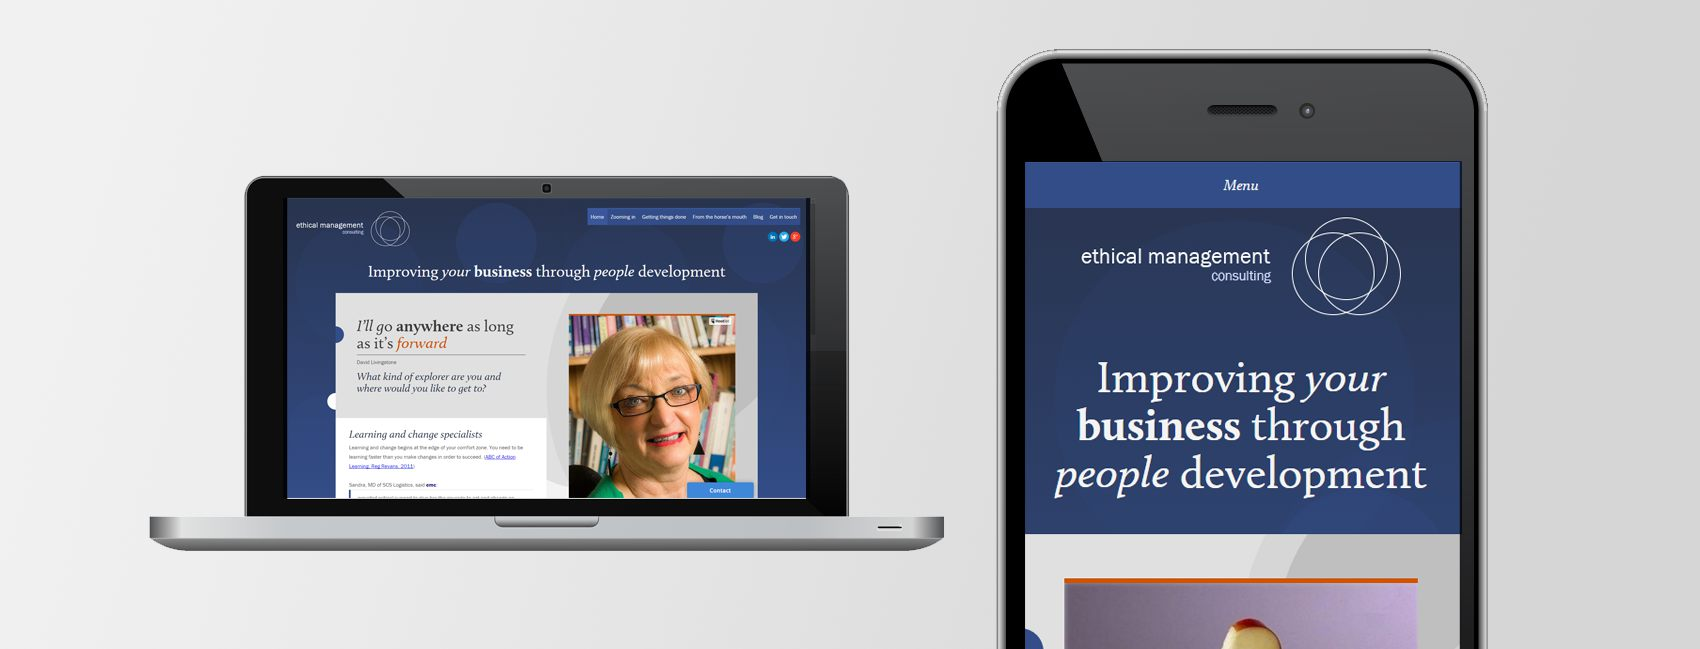 Responsive website design for Ethical Management Consulting